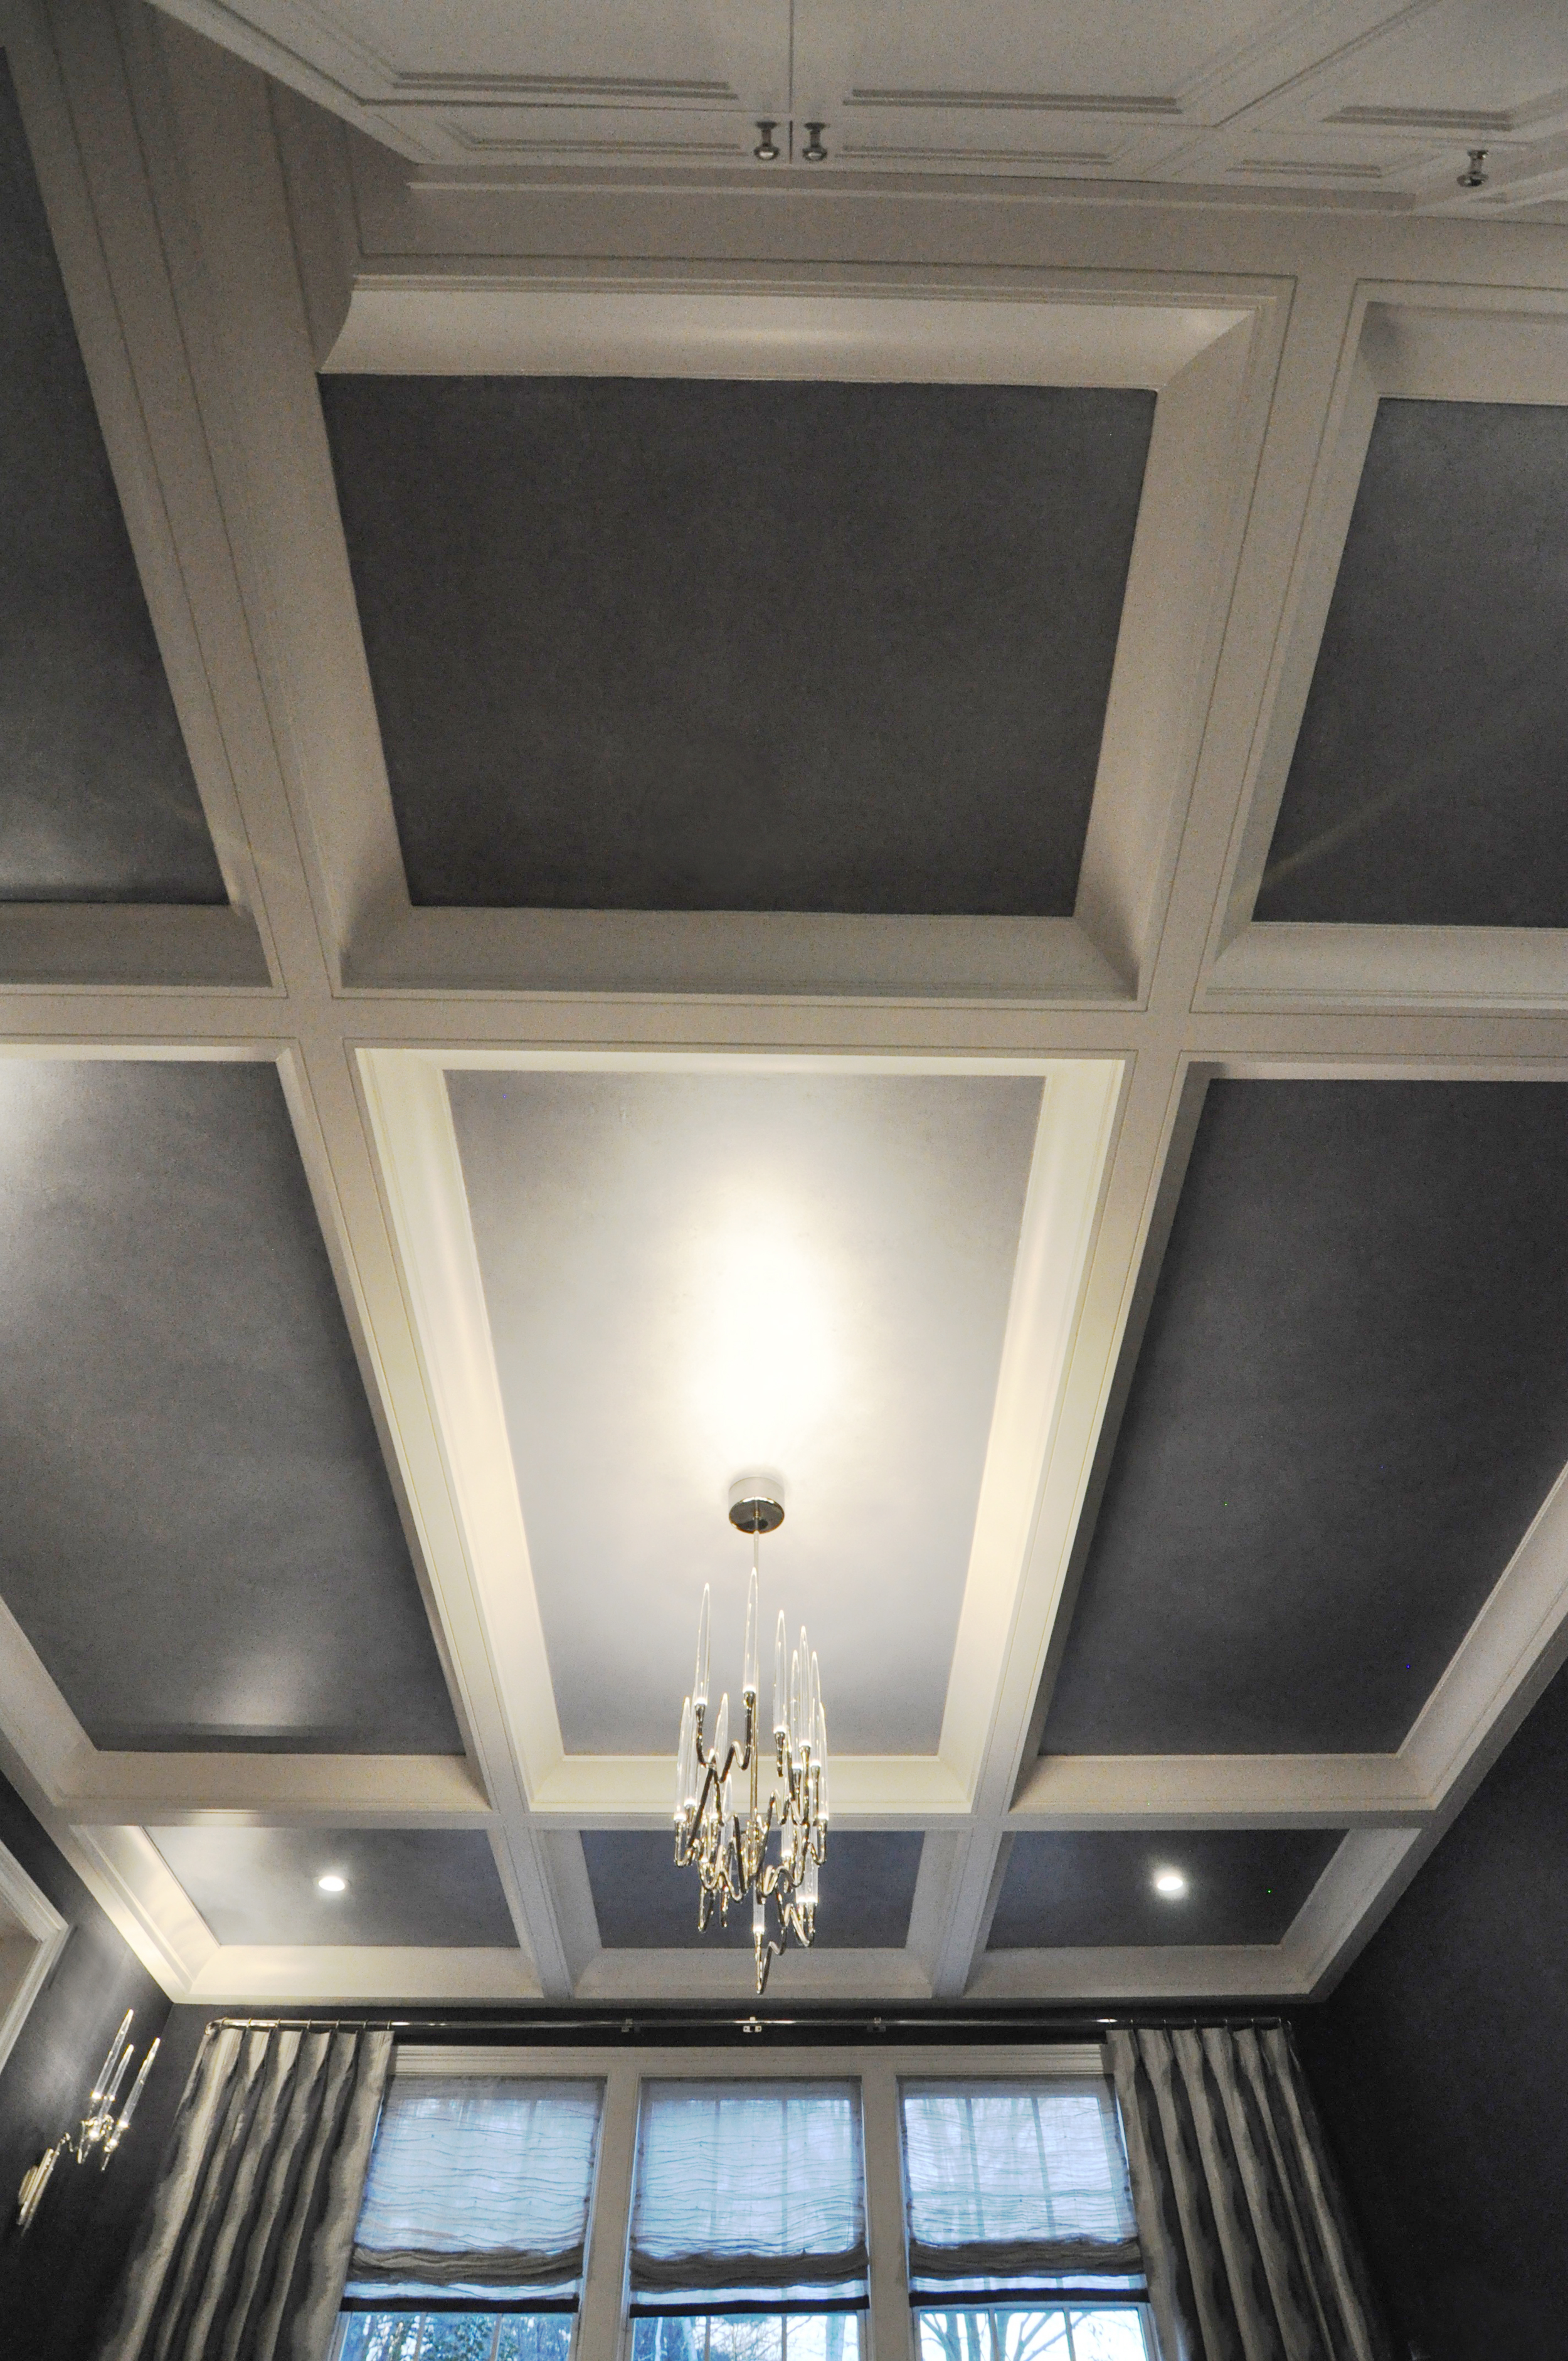 KAM DESIGN_Dining Room Coffered Ceiling_Ombre Faux Finish Paint Treatment on Grounds_web.jpg